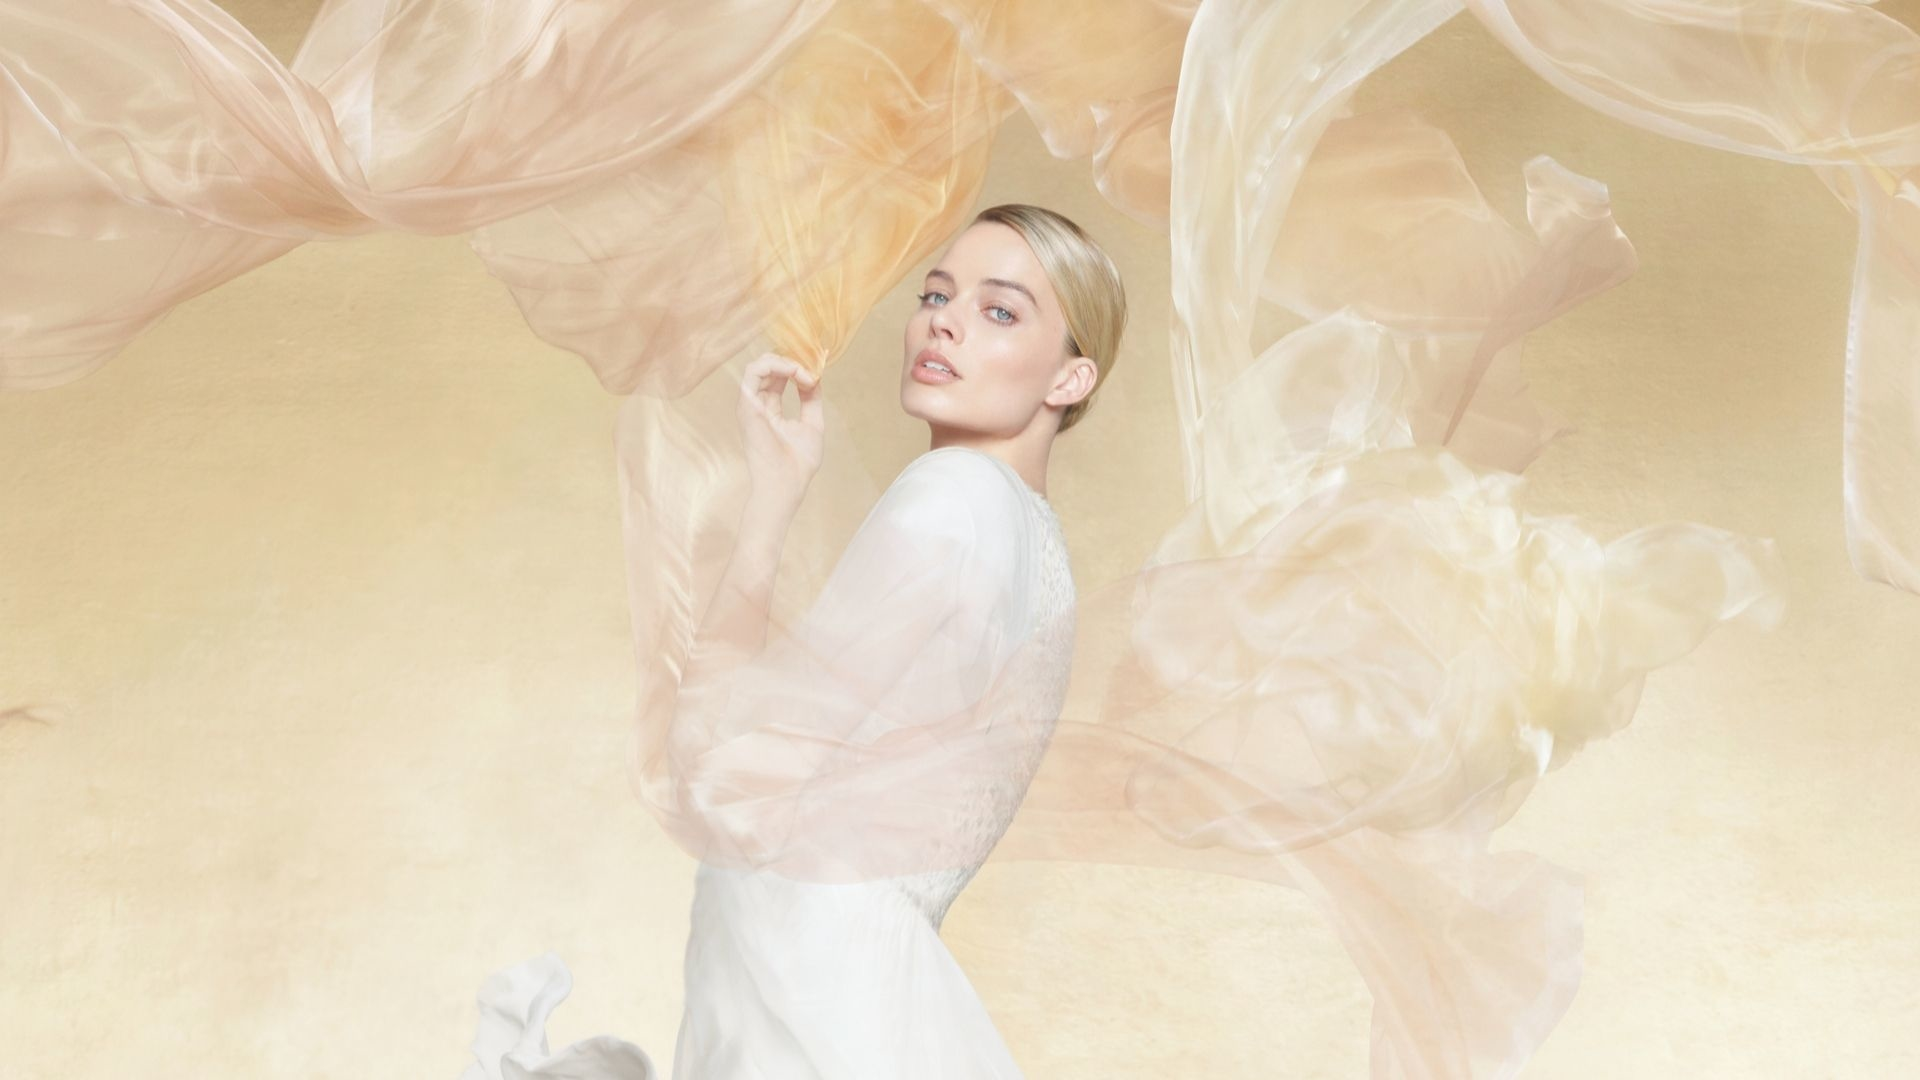 Golden Girl: Margot Robbie On Being The Face Of Chanel's Latest Fragrance